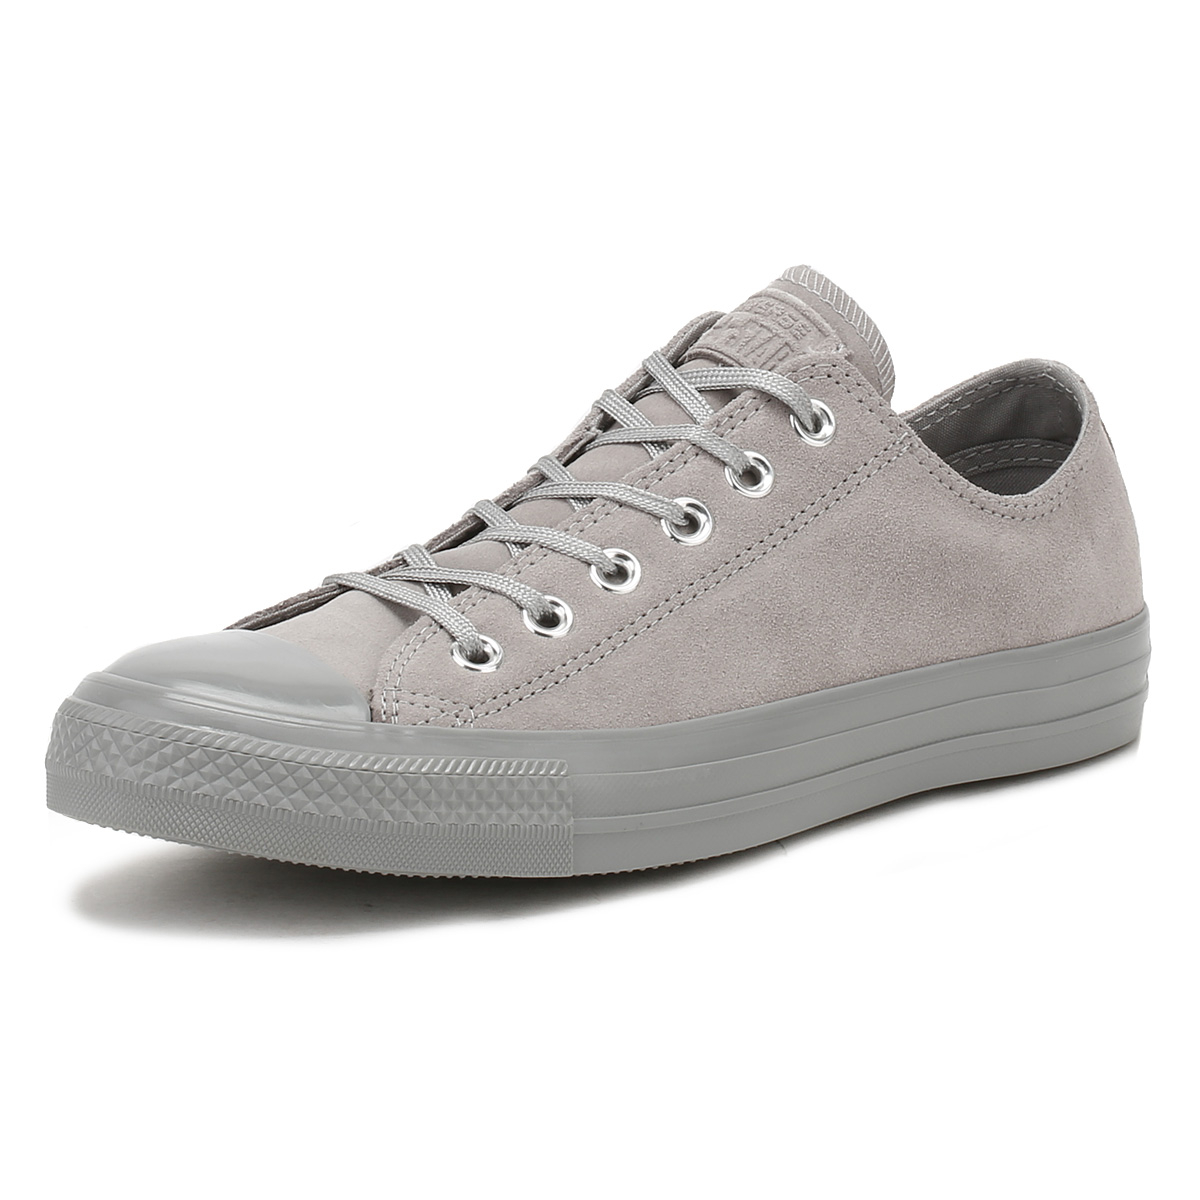 622f90a3a34e7f Details about Converse Chuck Taylor All Star Womens Ox Trainers Dolphin  Grey Suede Sneakers